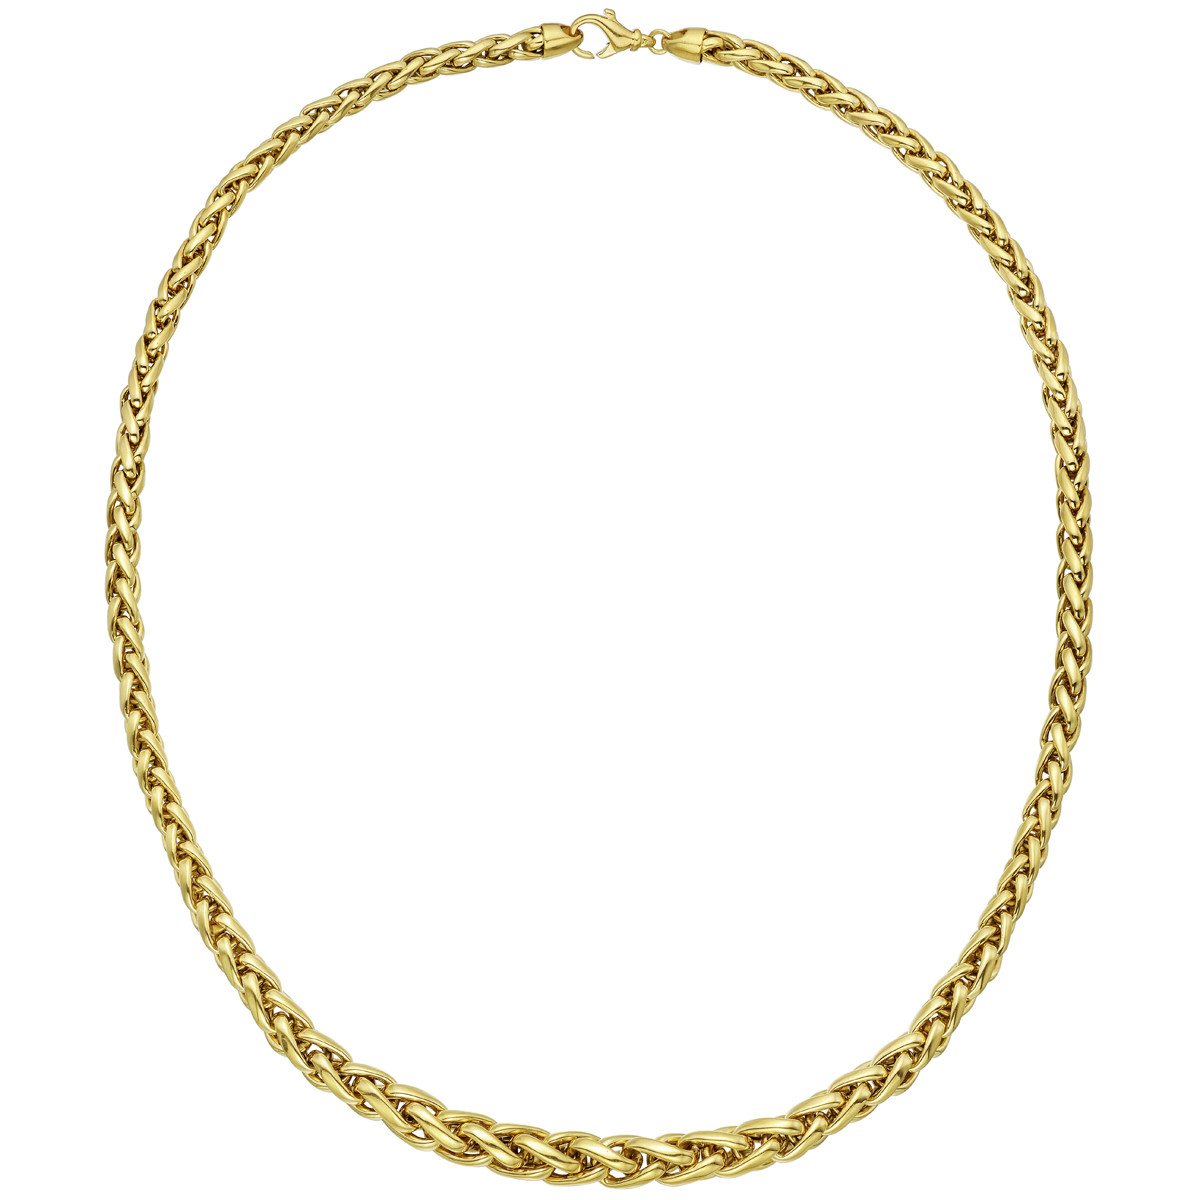 18k Yellow Gold Braided Link Necklace